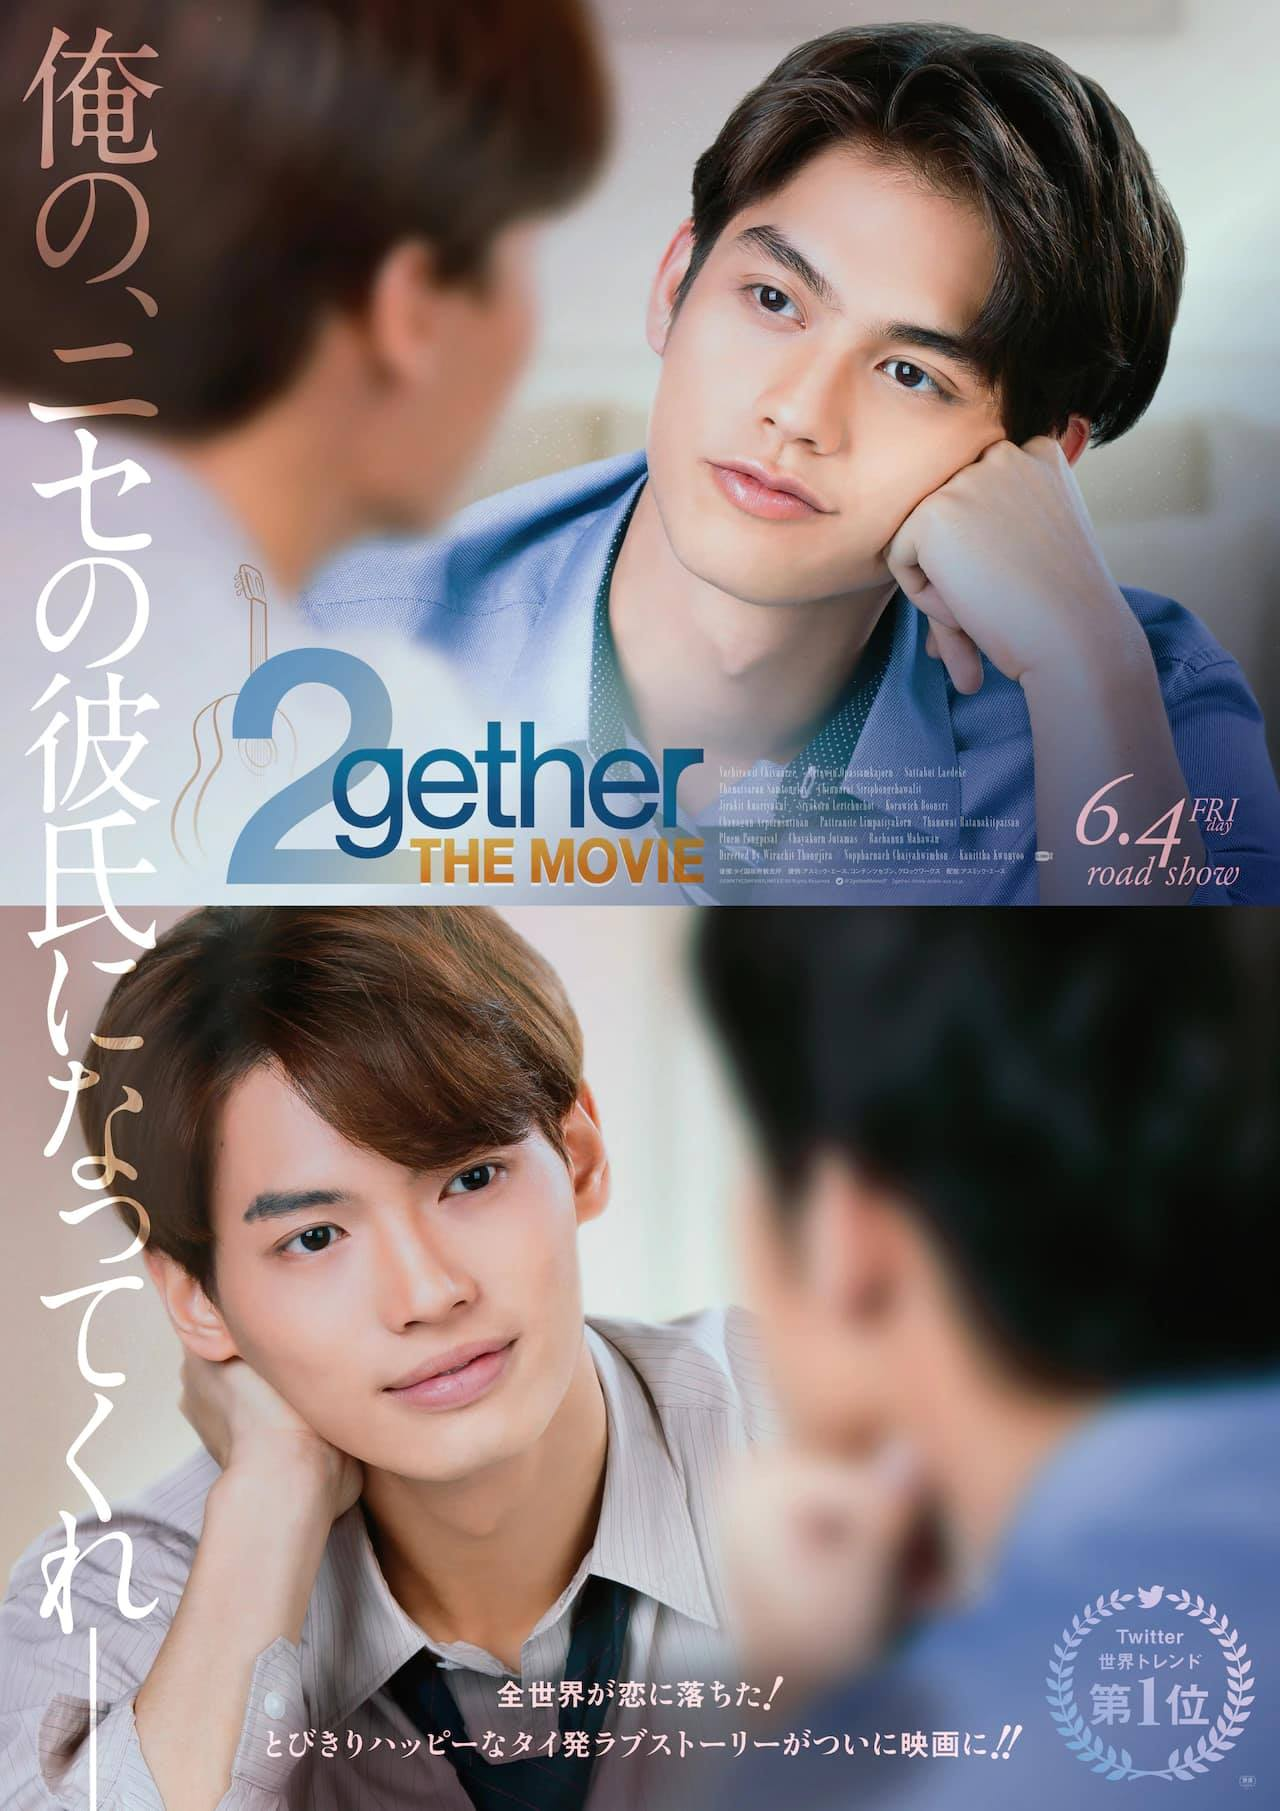 2gether the movie japanese